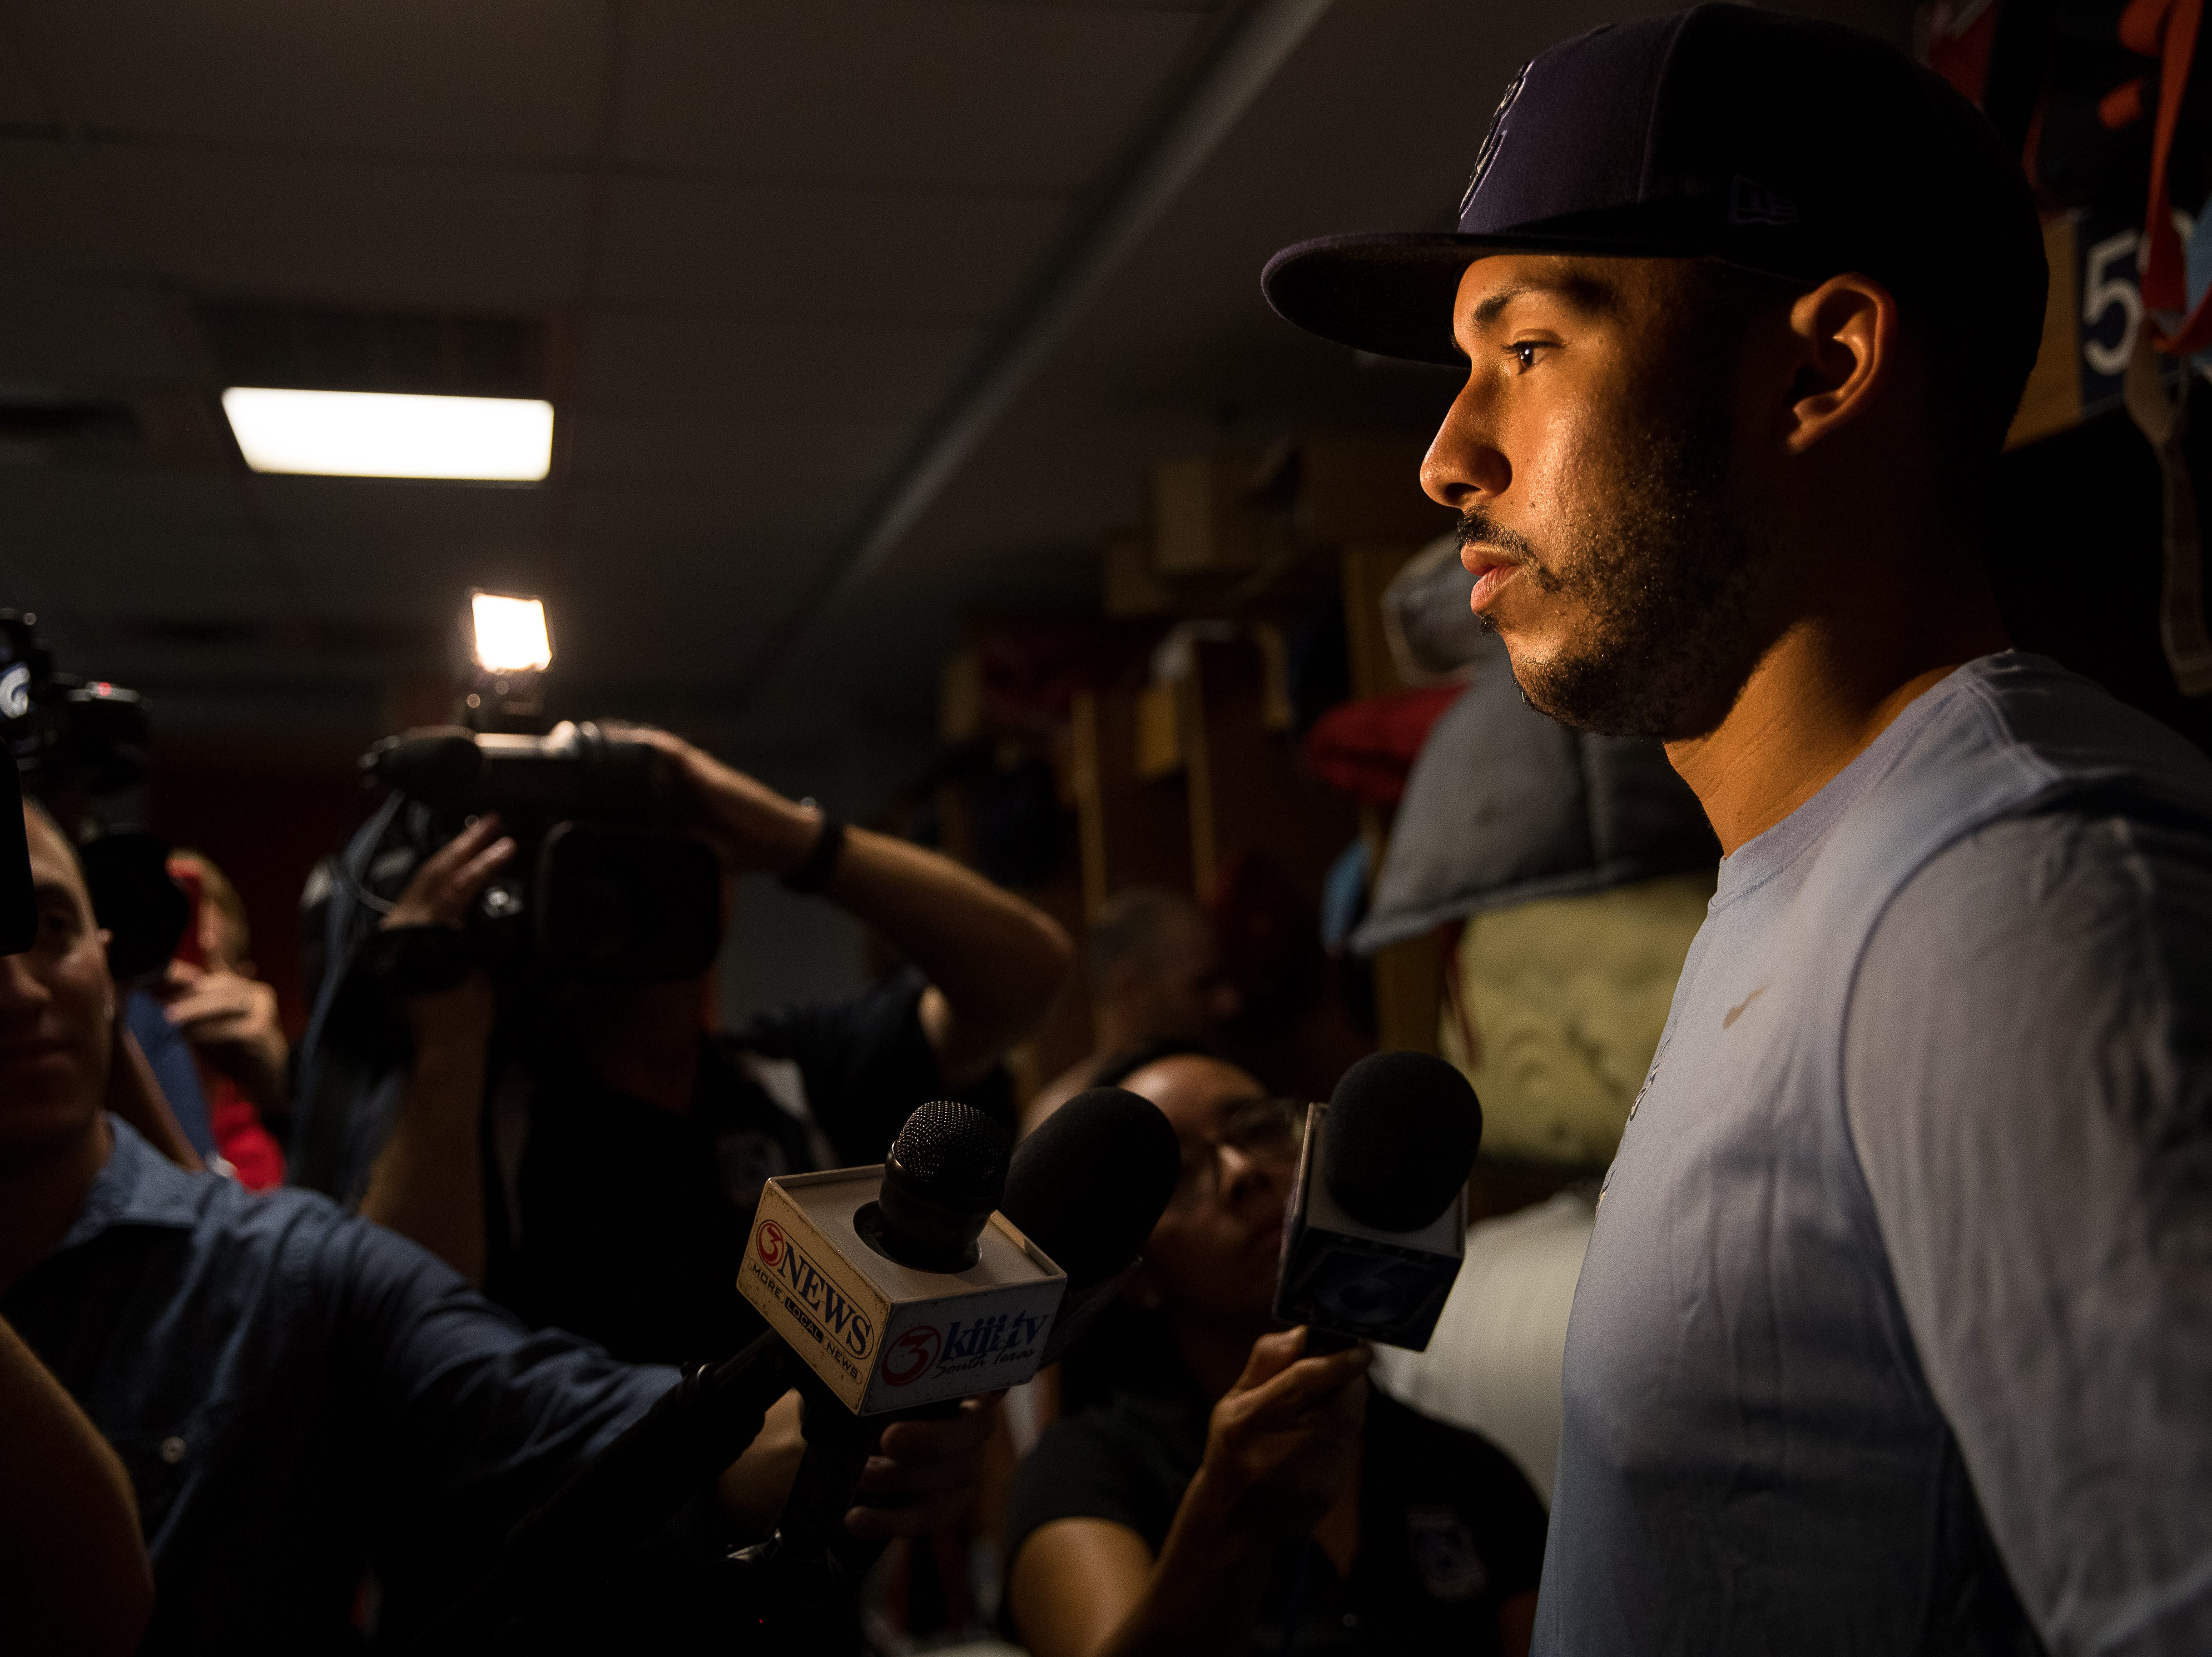 Astros shortstop Carlos Correa talks to the media in the clubhouse at Whataburger Field on Tuesday, Aug. 7, 2018. Correa will be playing shortstop for the Corpus Christi Hooks as he rehabs a back injury.